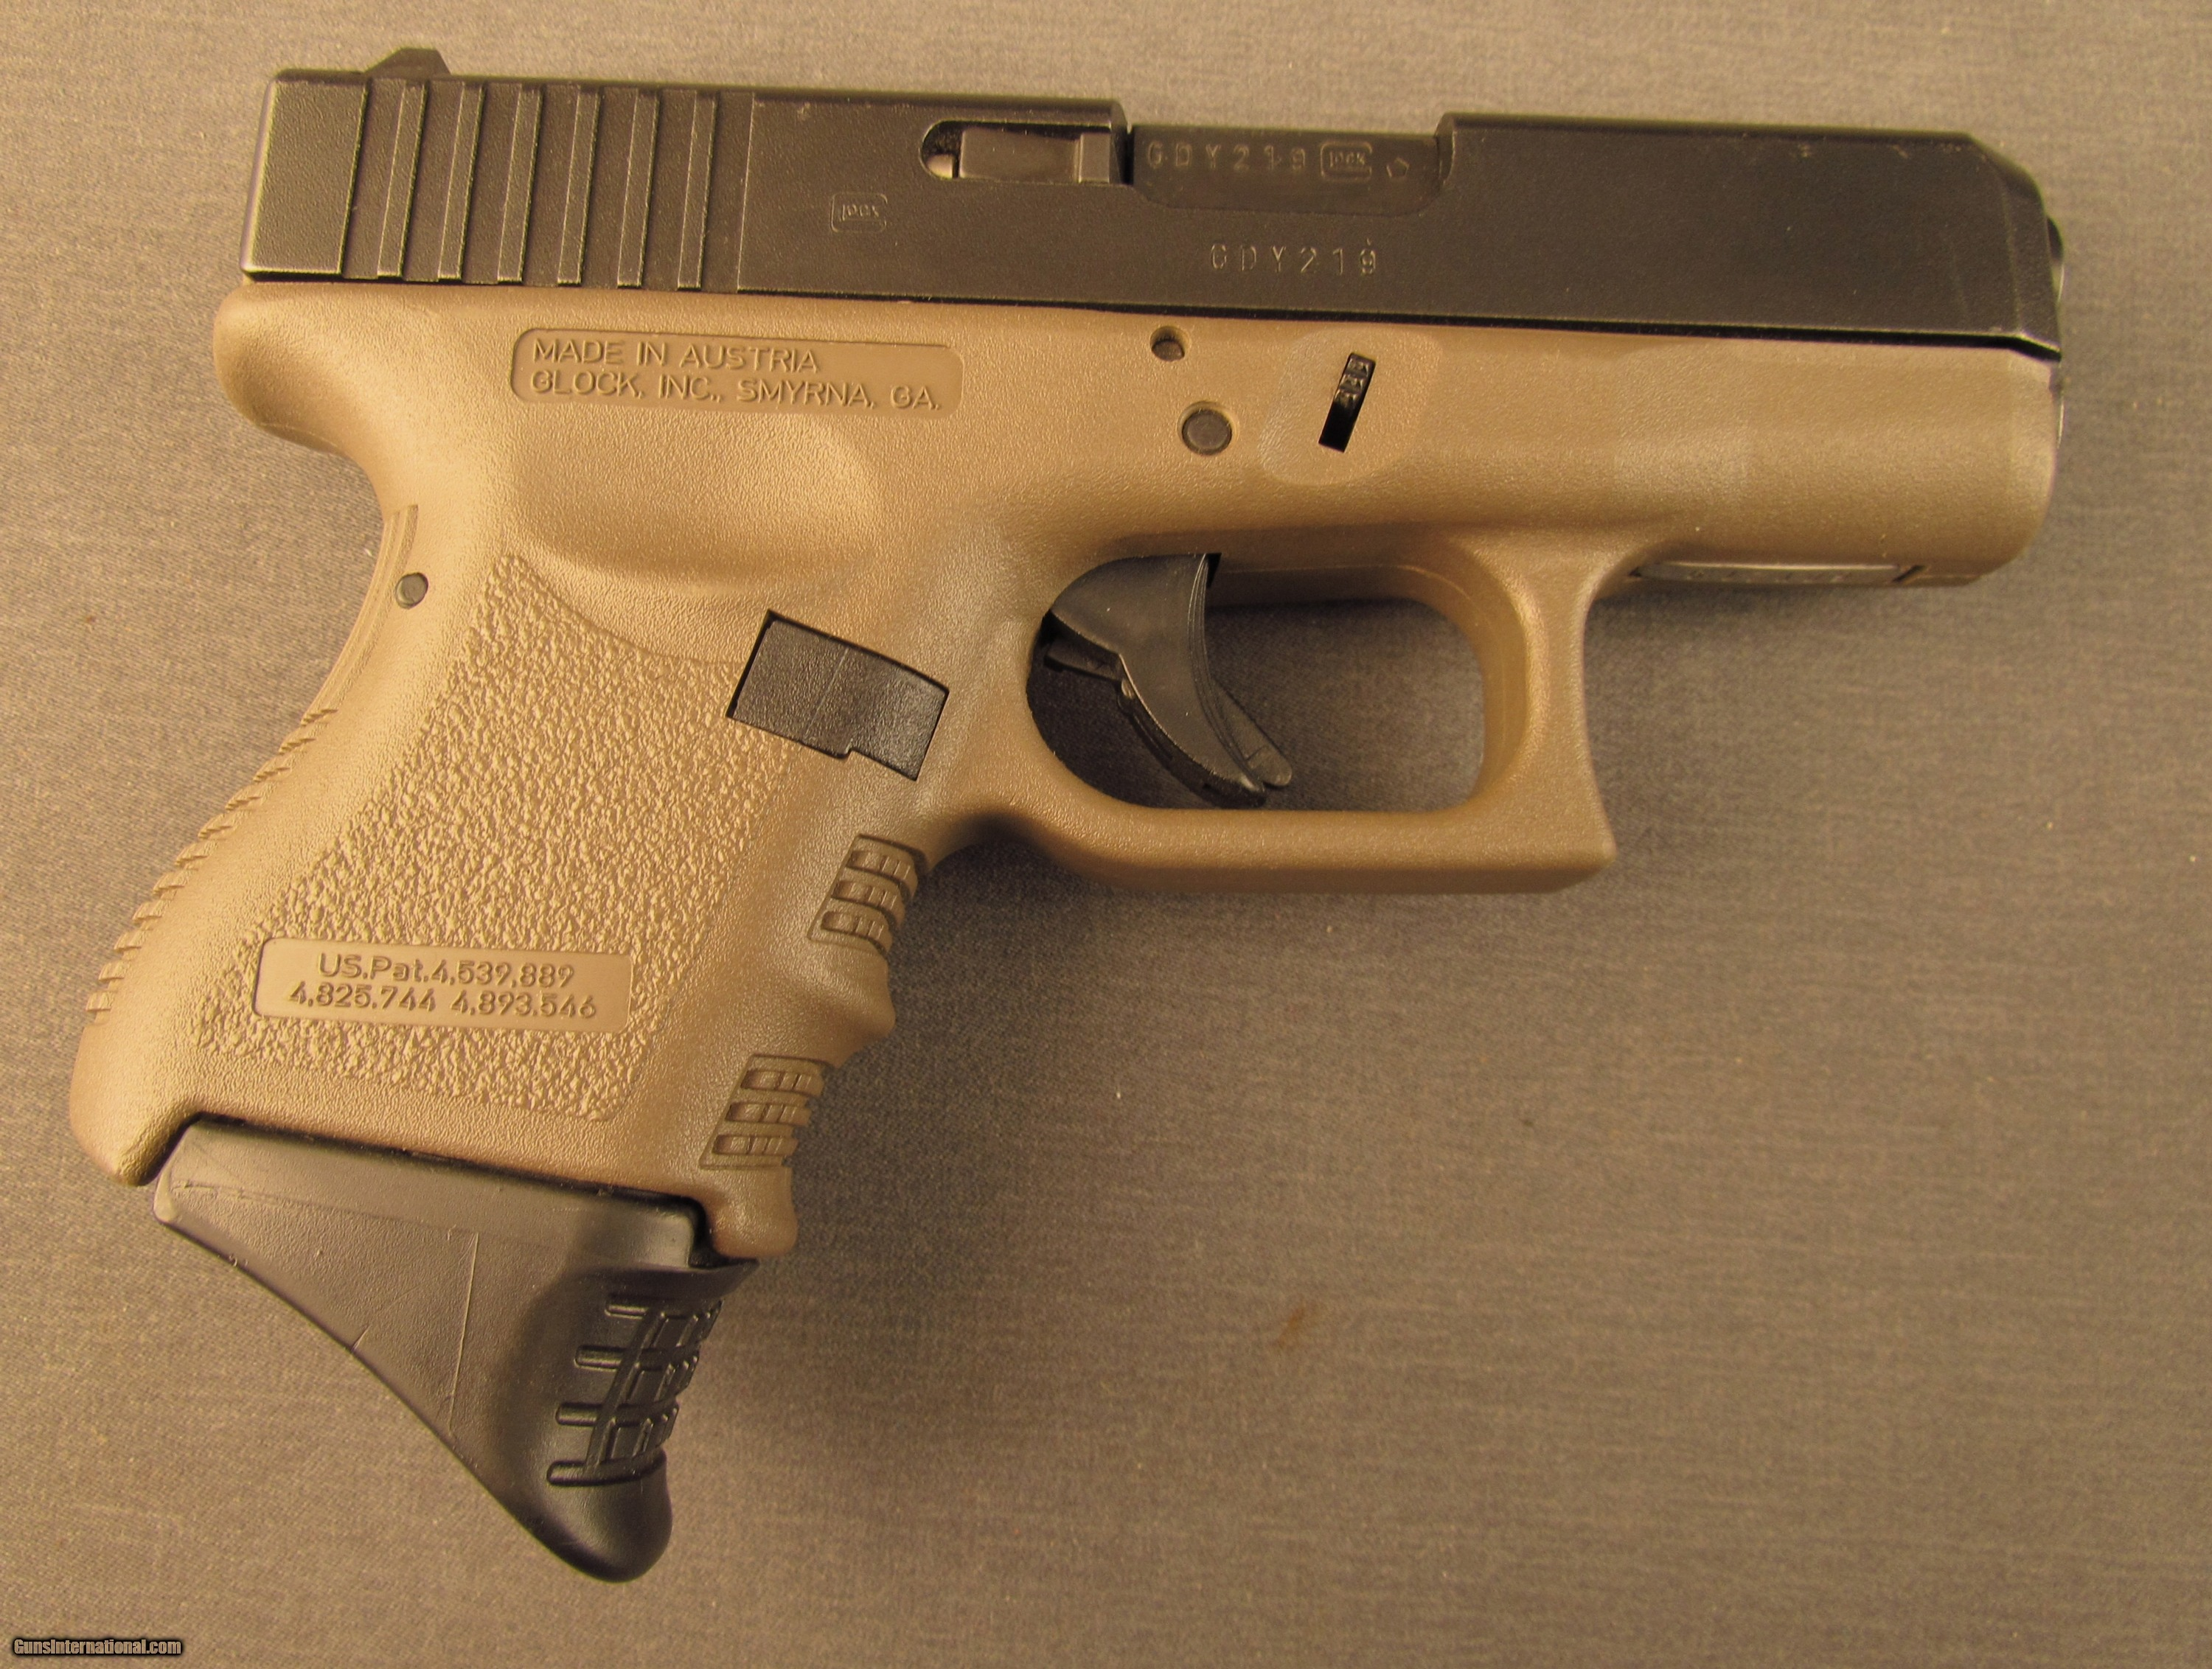 Glock 27 Sub Compact 40 S W Pistol 2 Mags